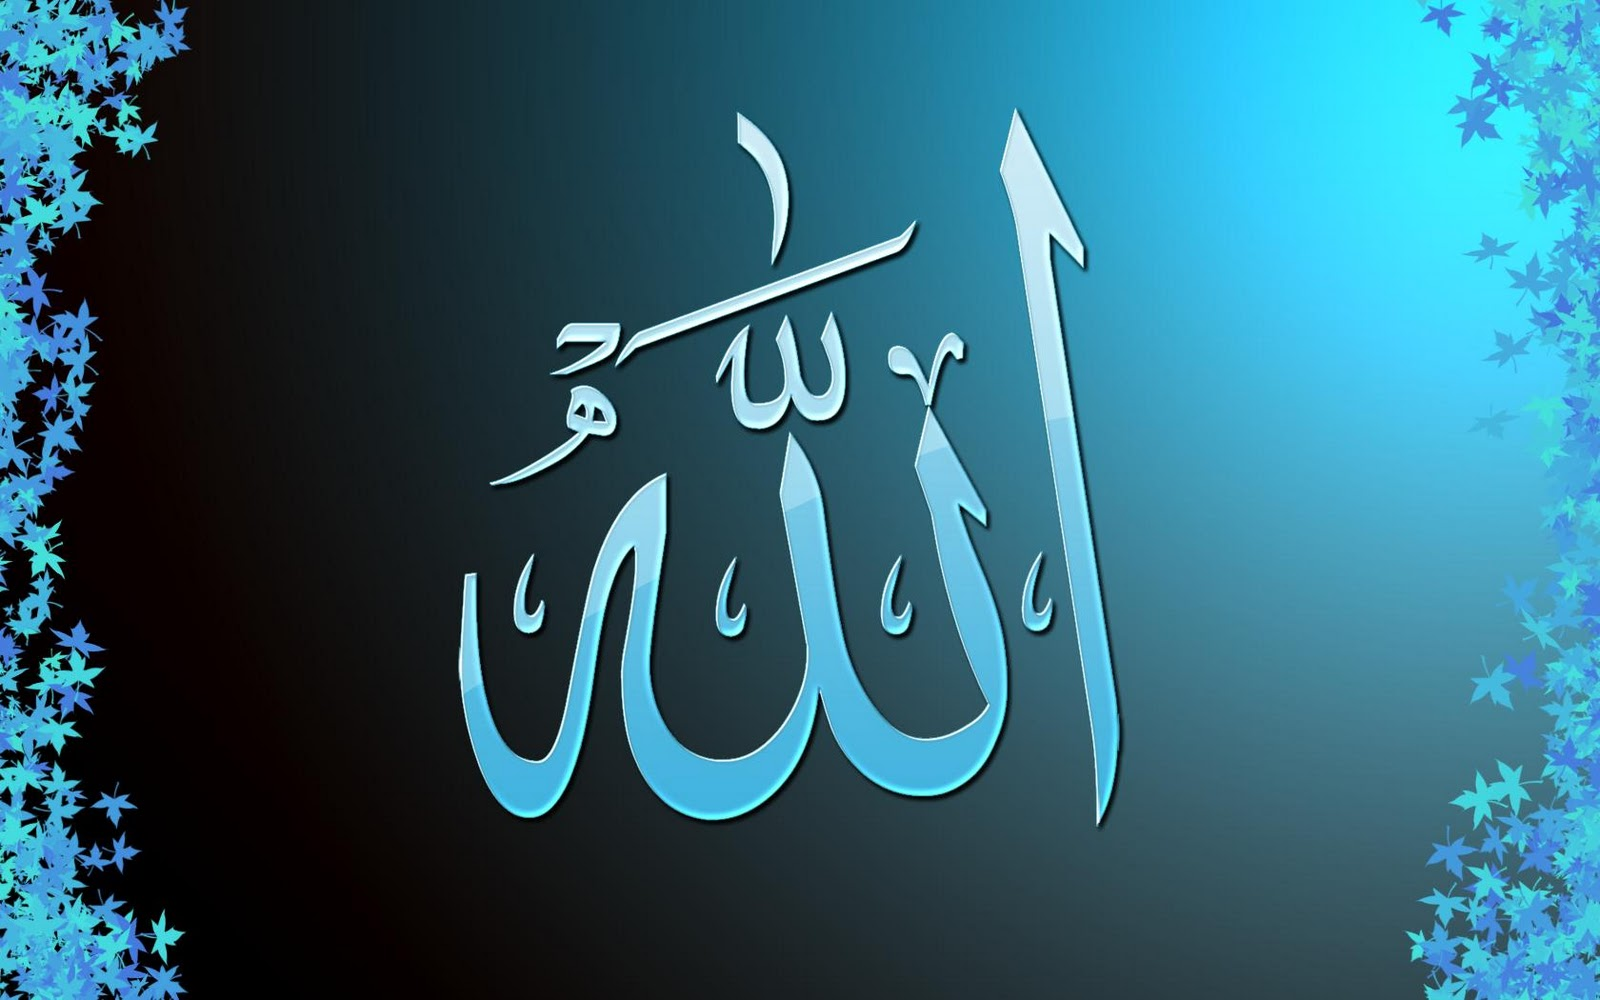 Wallpaper Allah 3d | Free Download Wallpaper | DaWallpaperz